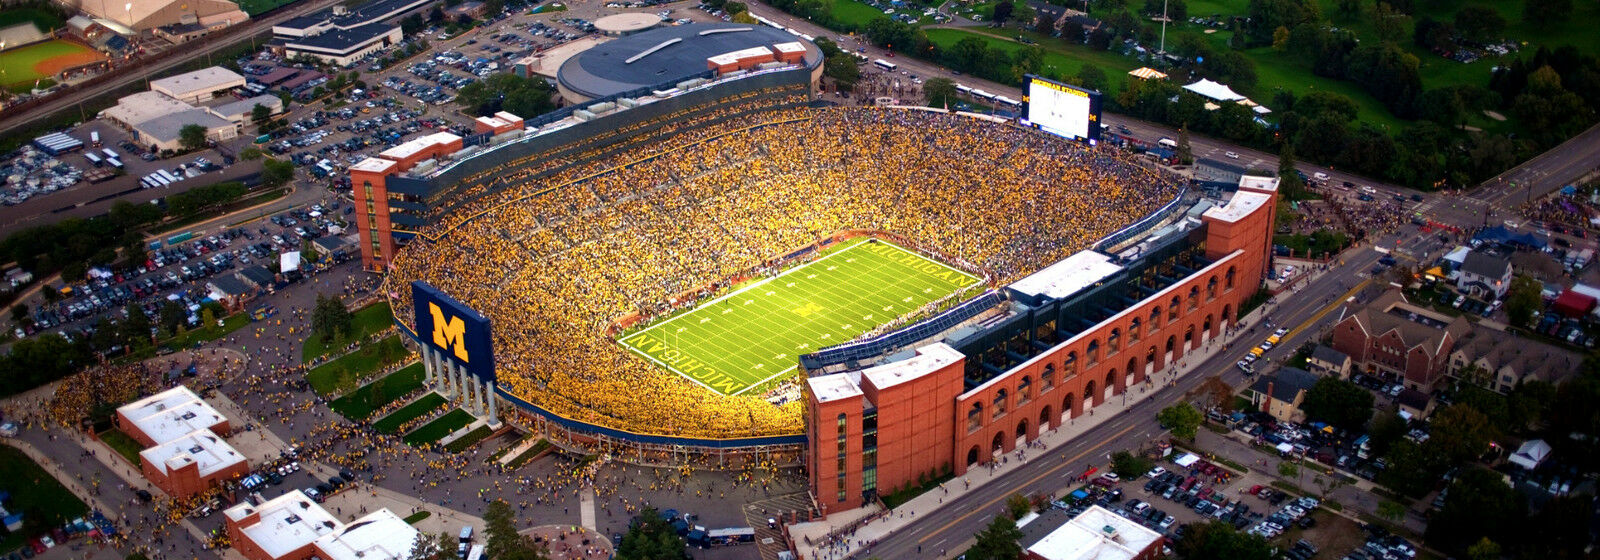 Tailgater Concierge Private Tailgate (Up To 12 People) - Michigan vs. Rutgers